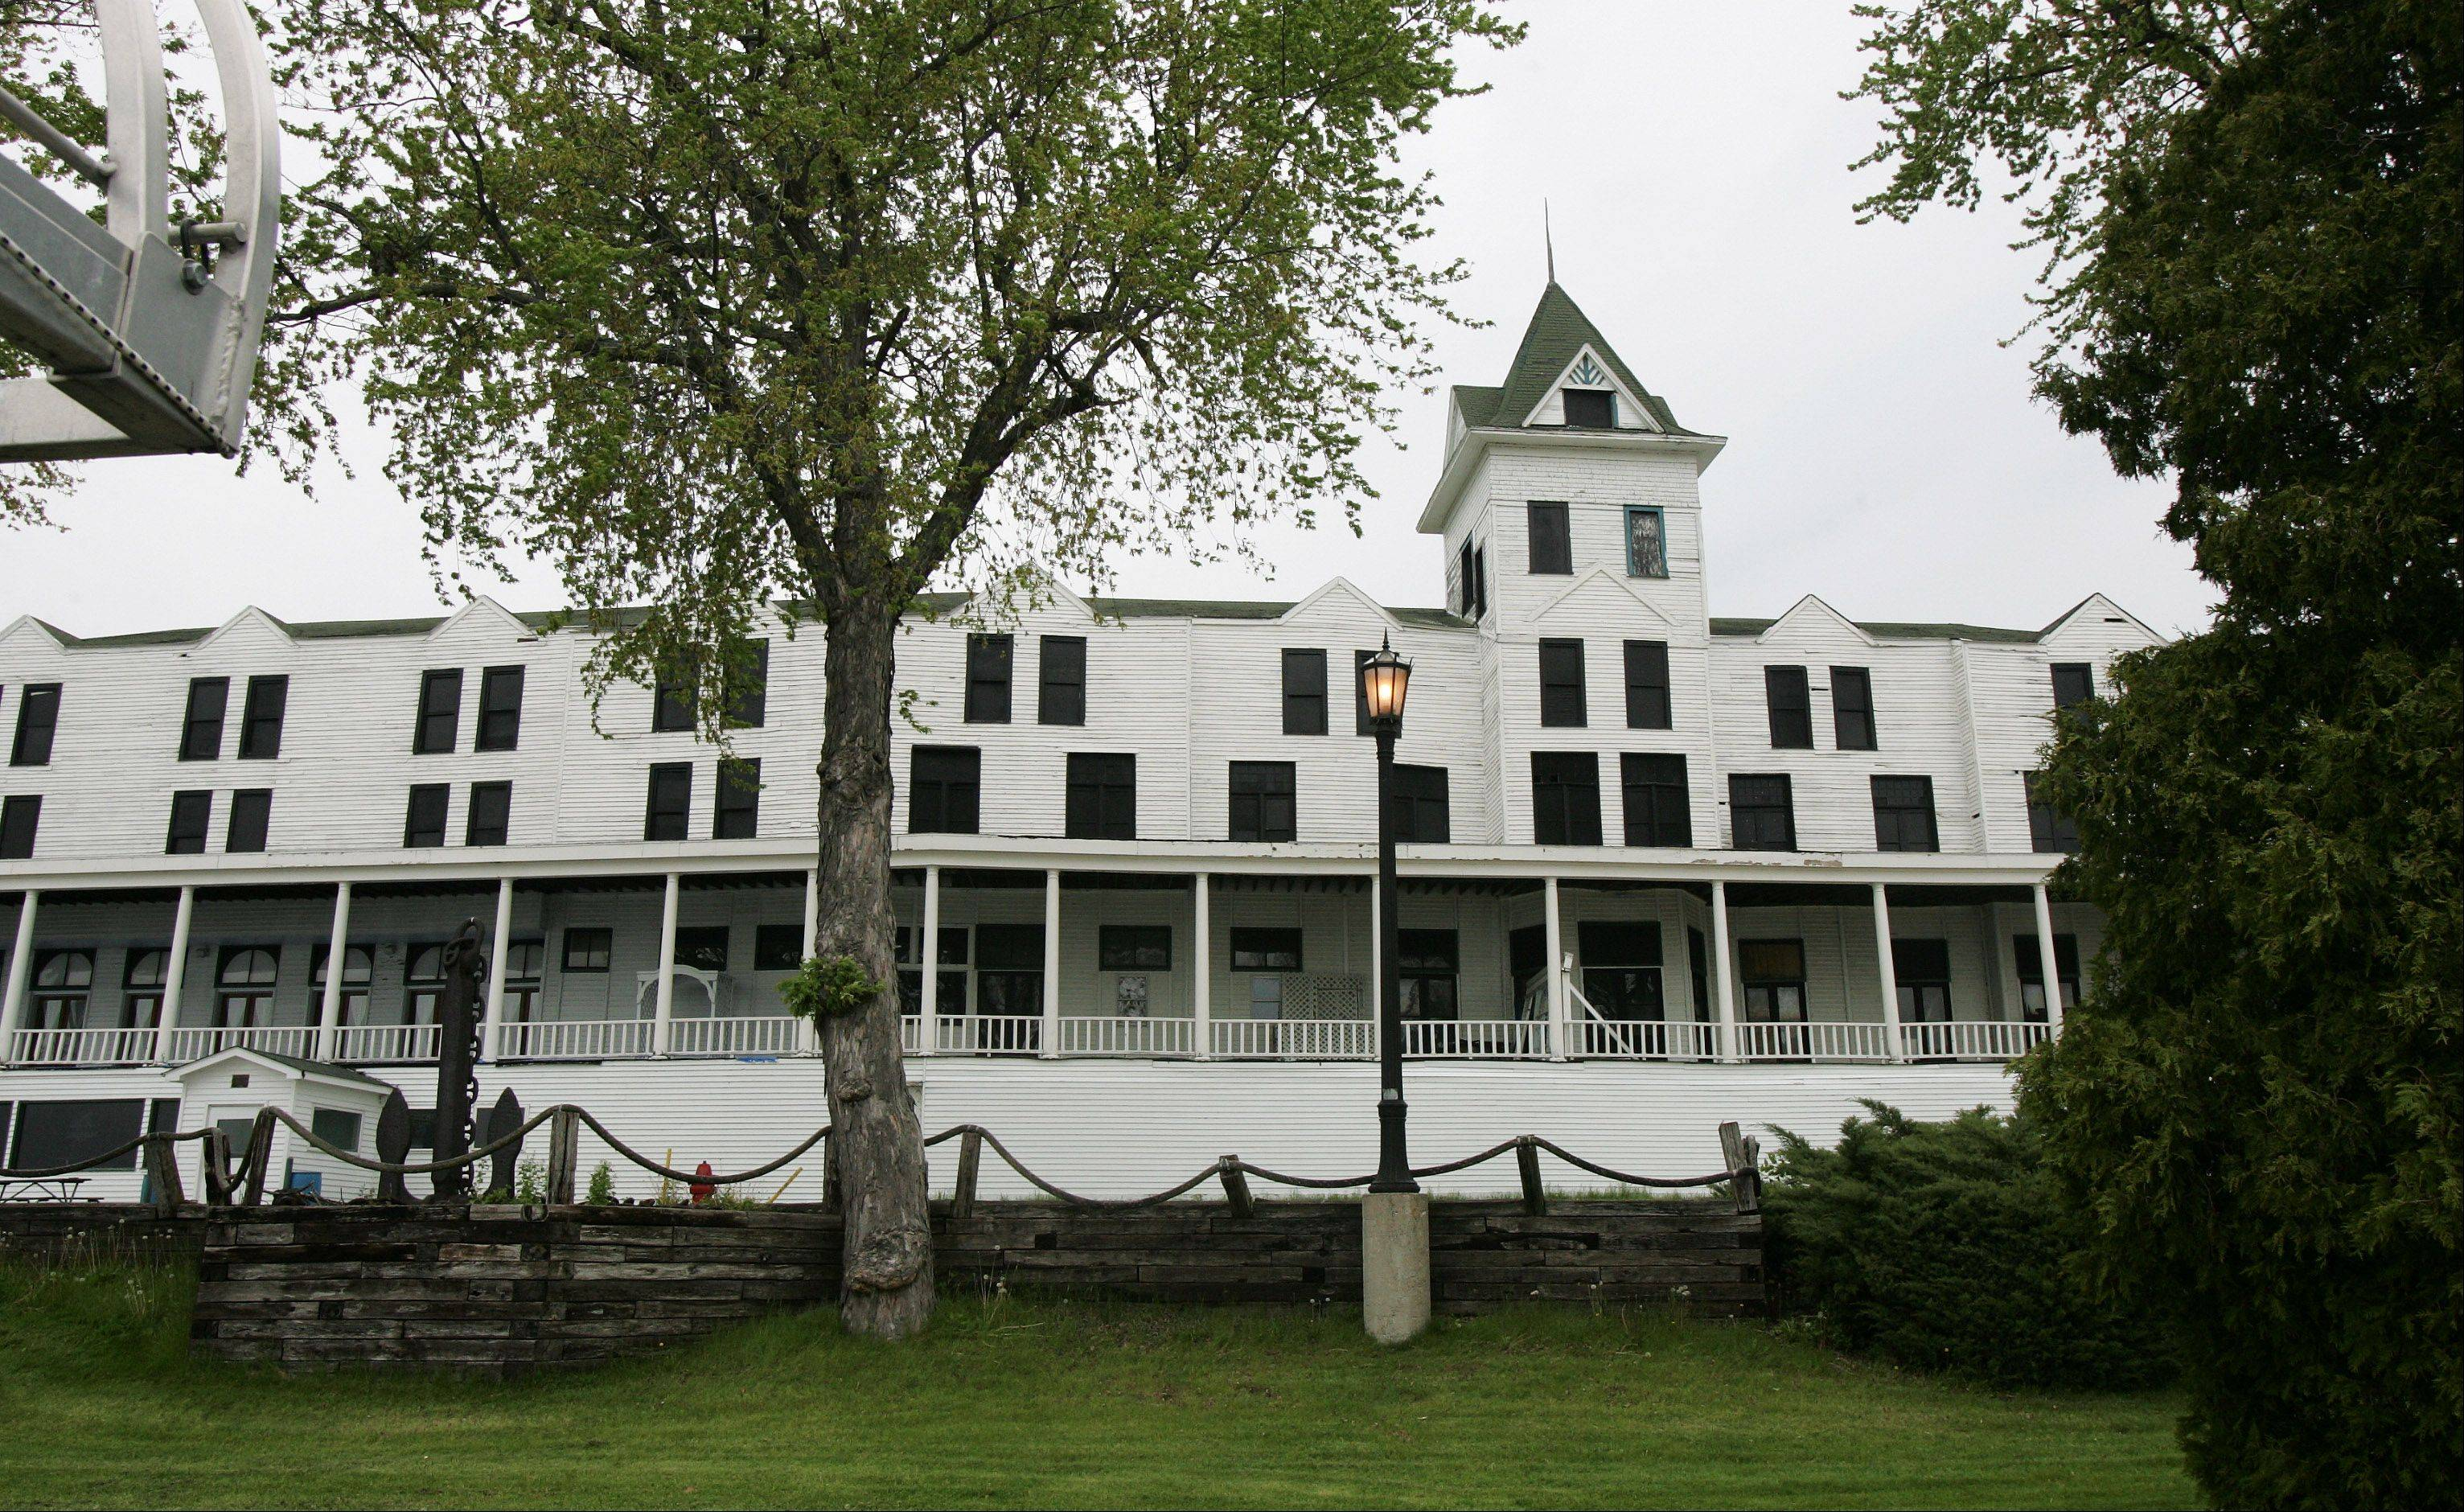 The online eBay auction of the Mineola Hotel and Lounge in Fox Lake ended Wednesday without a single bid being filed, but owner Pete Jakstas said it could still indirectly lead to a sale.